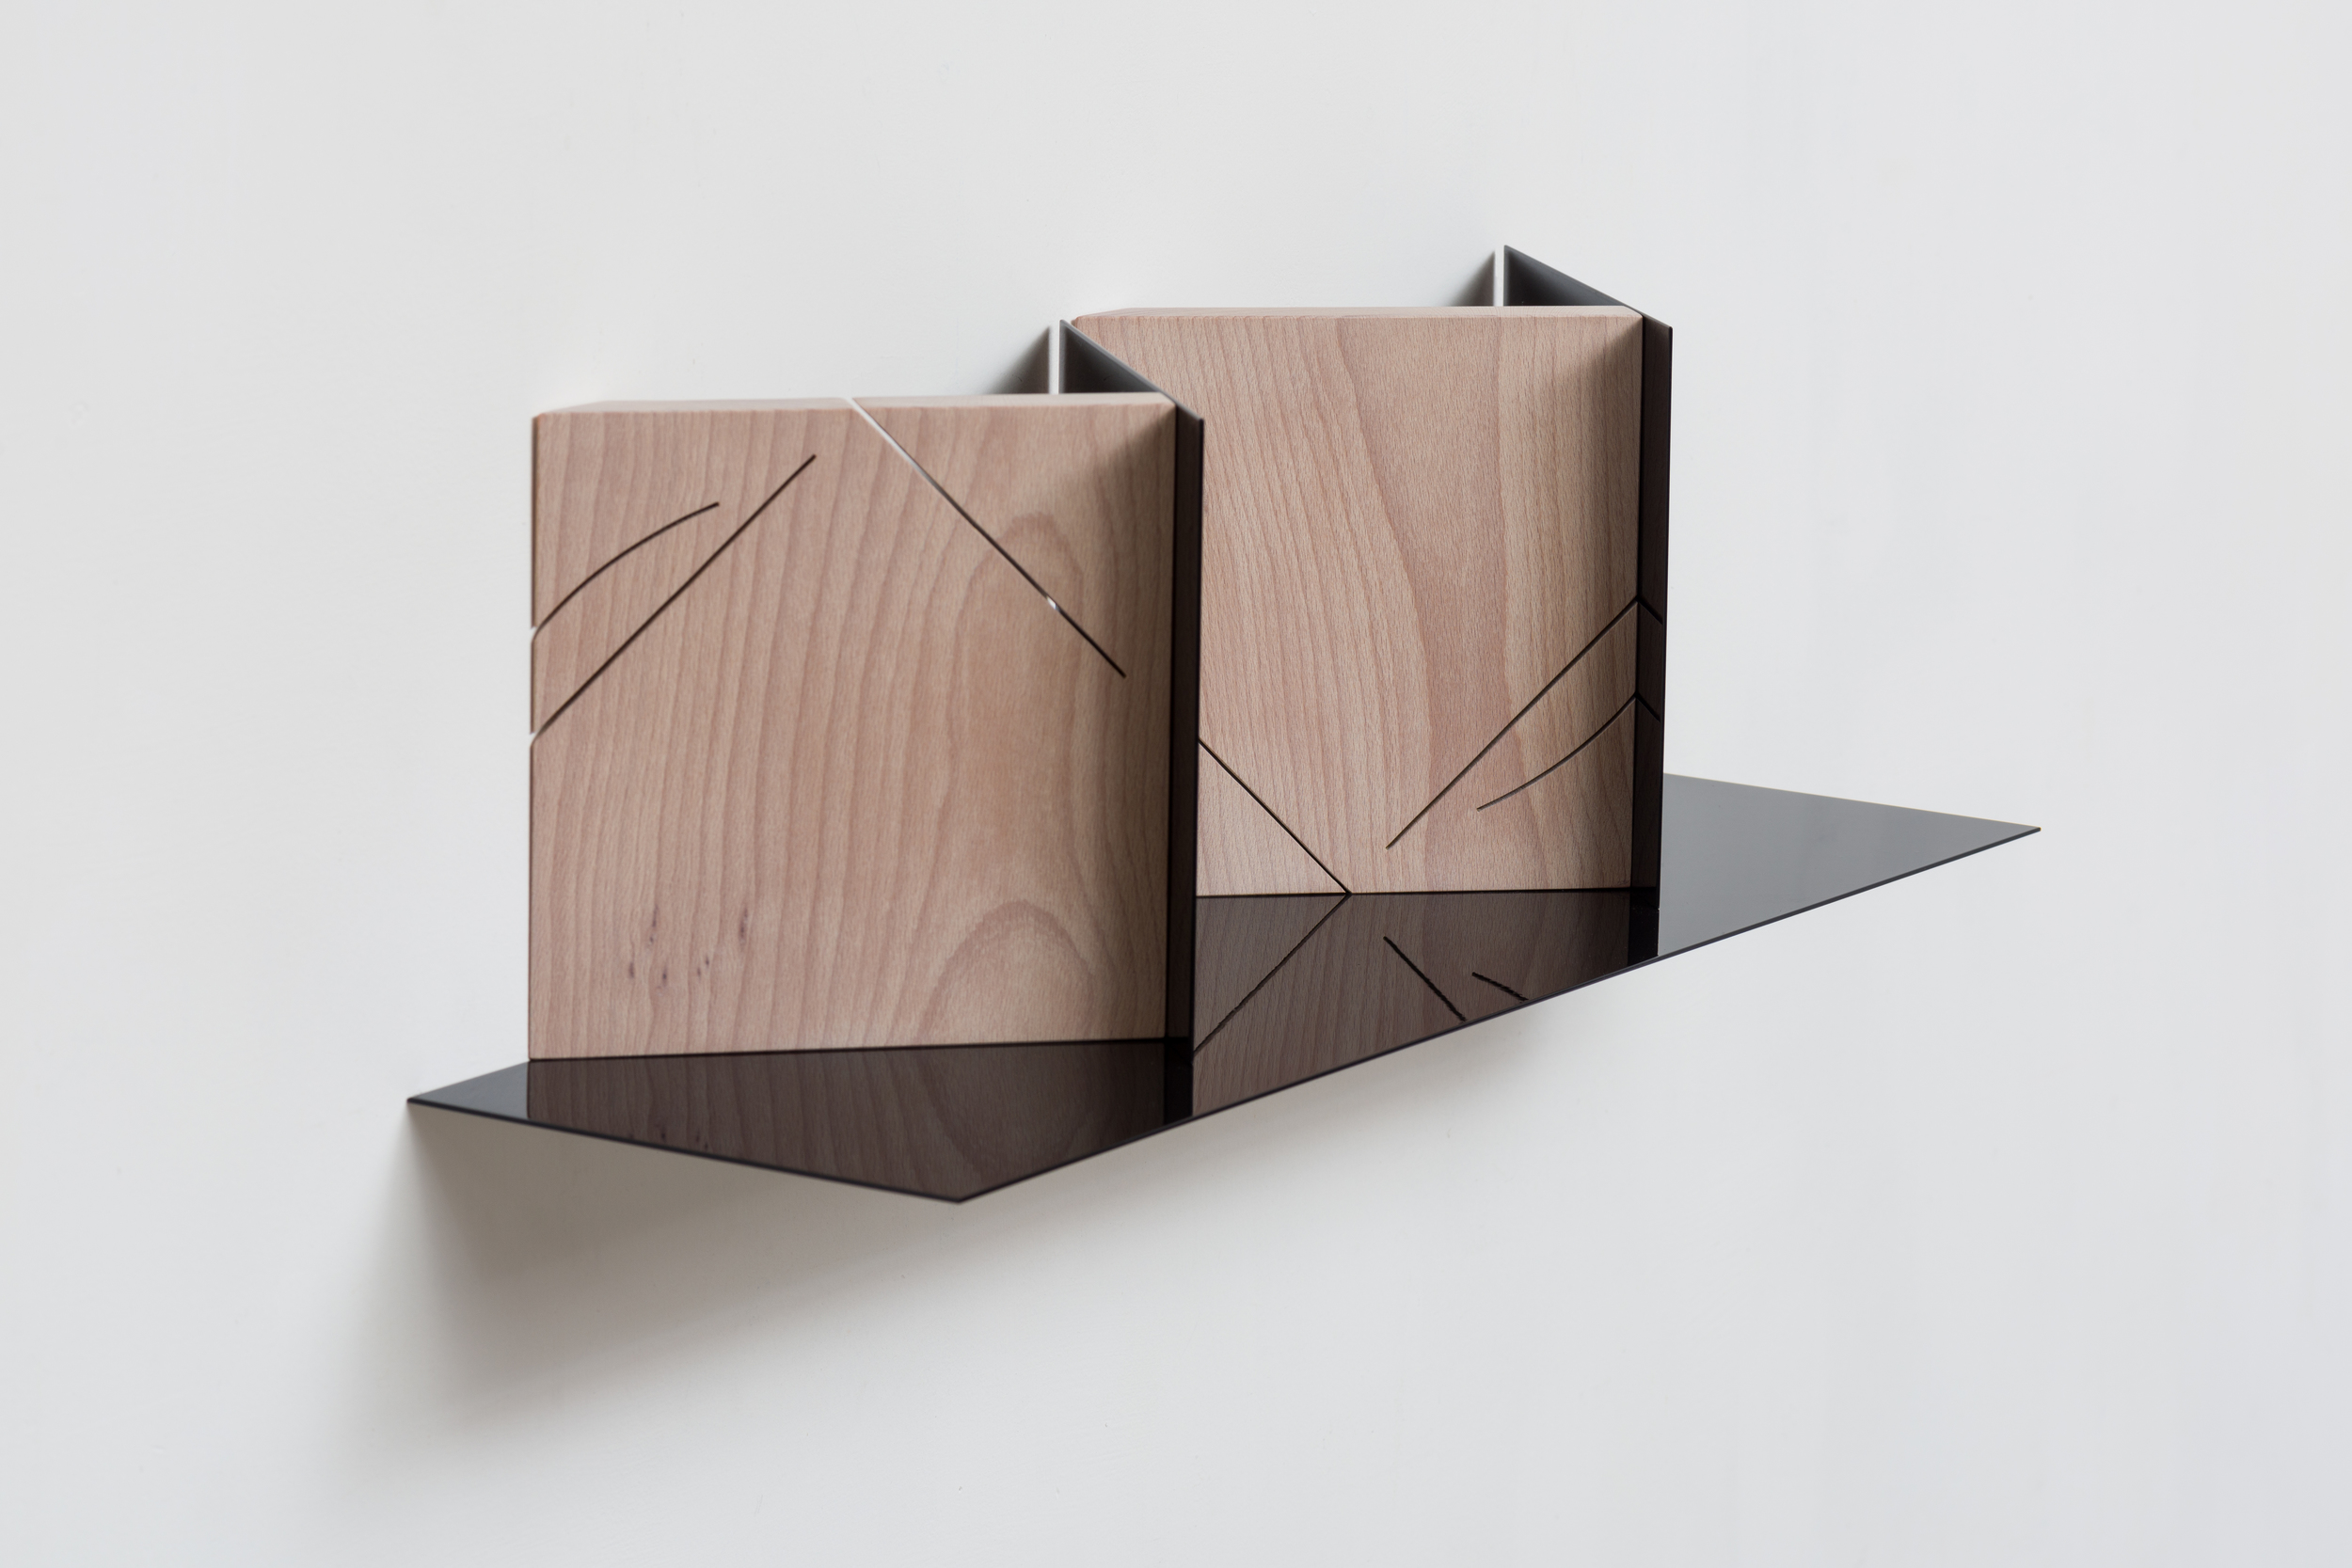 Corners (Mirrored) 2014 Euro-beech hardwood, steel, copper rivets, enamel, wax 17.7 x 60.9 x 17.7 cm / 7 x 24 x 7 in